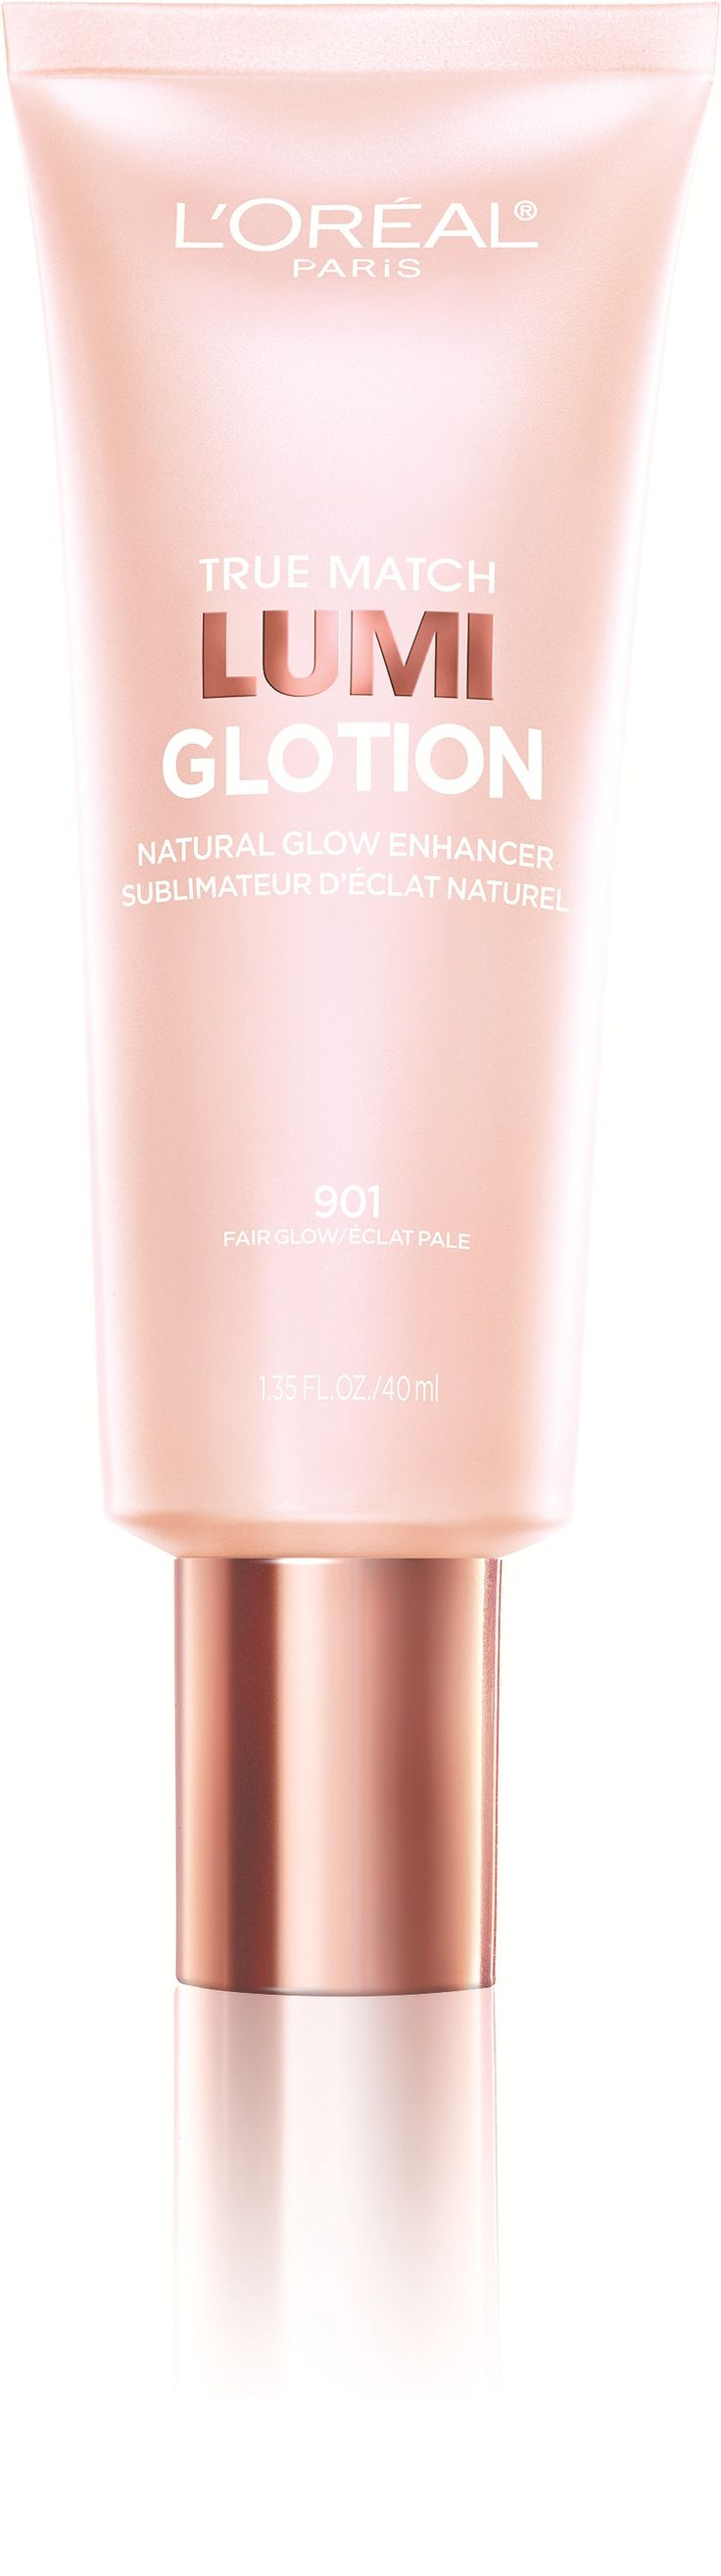 L'Oreal's True Match Lumi Glotion Is The One Drugstore Product That Gives Me Everything I Need From A Highlighter